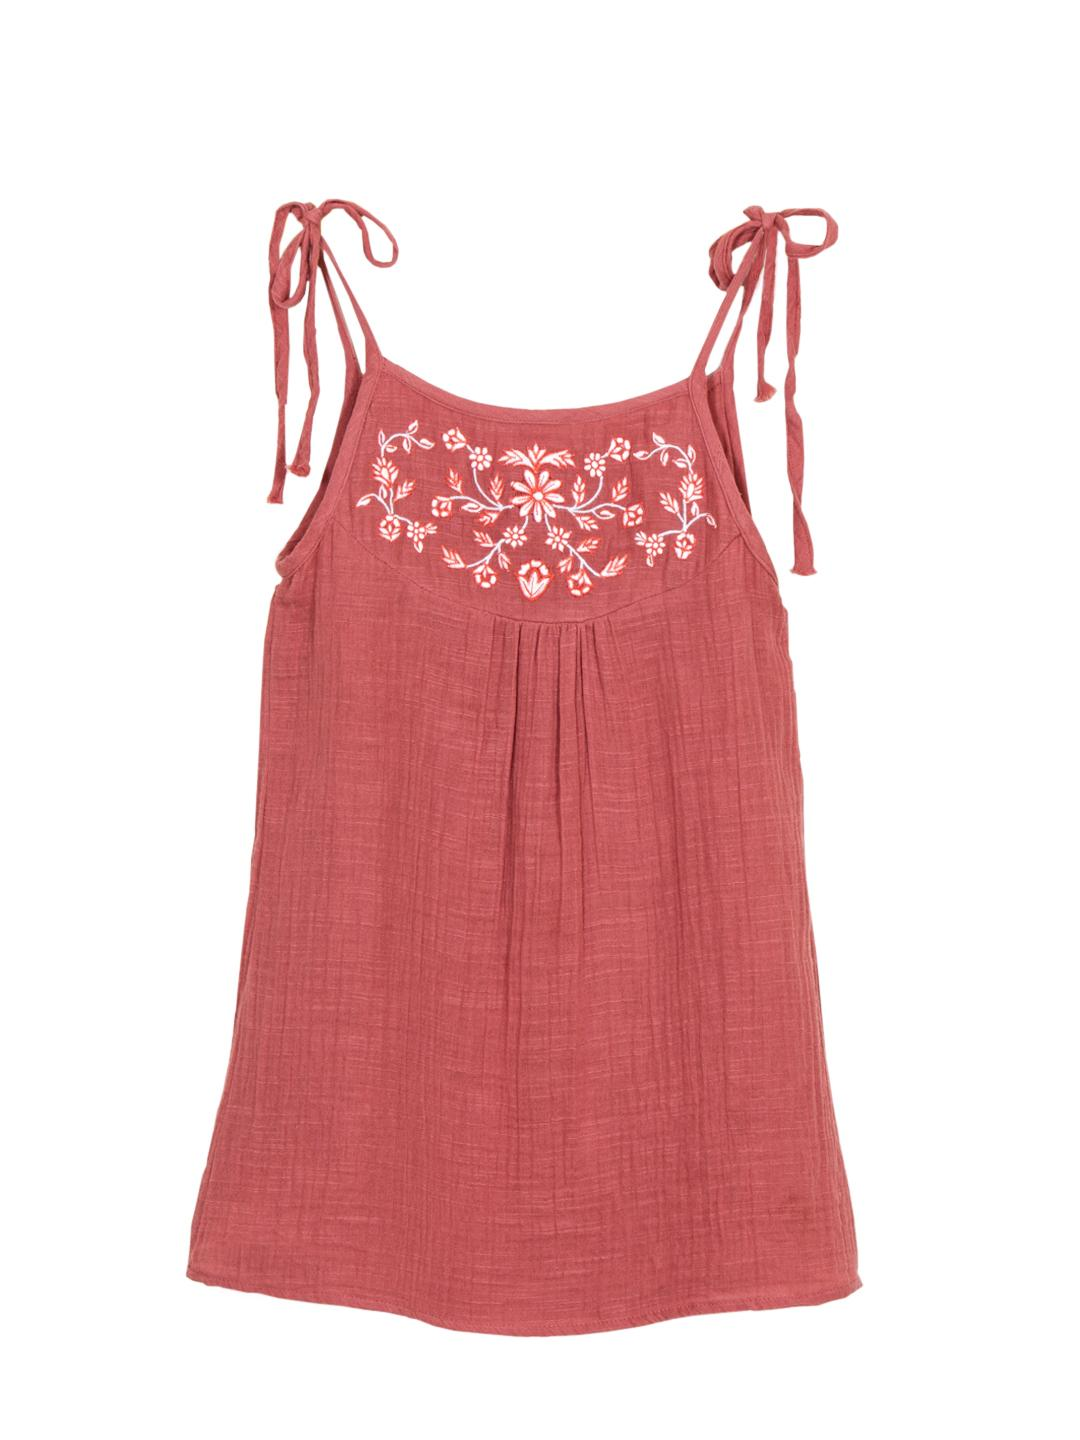 Embroidered Strappy Top